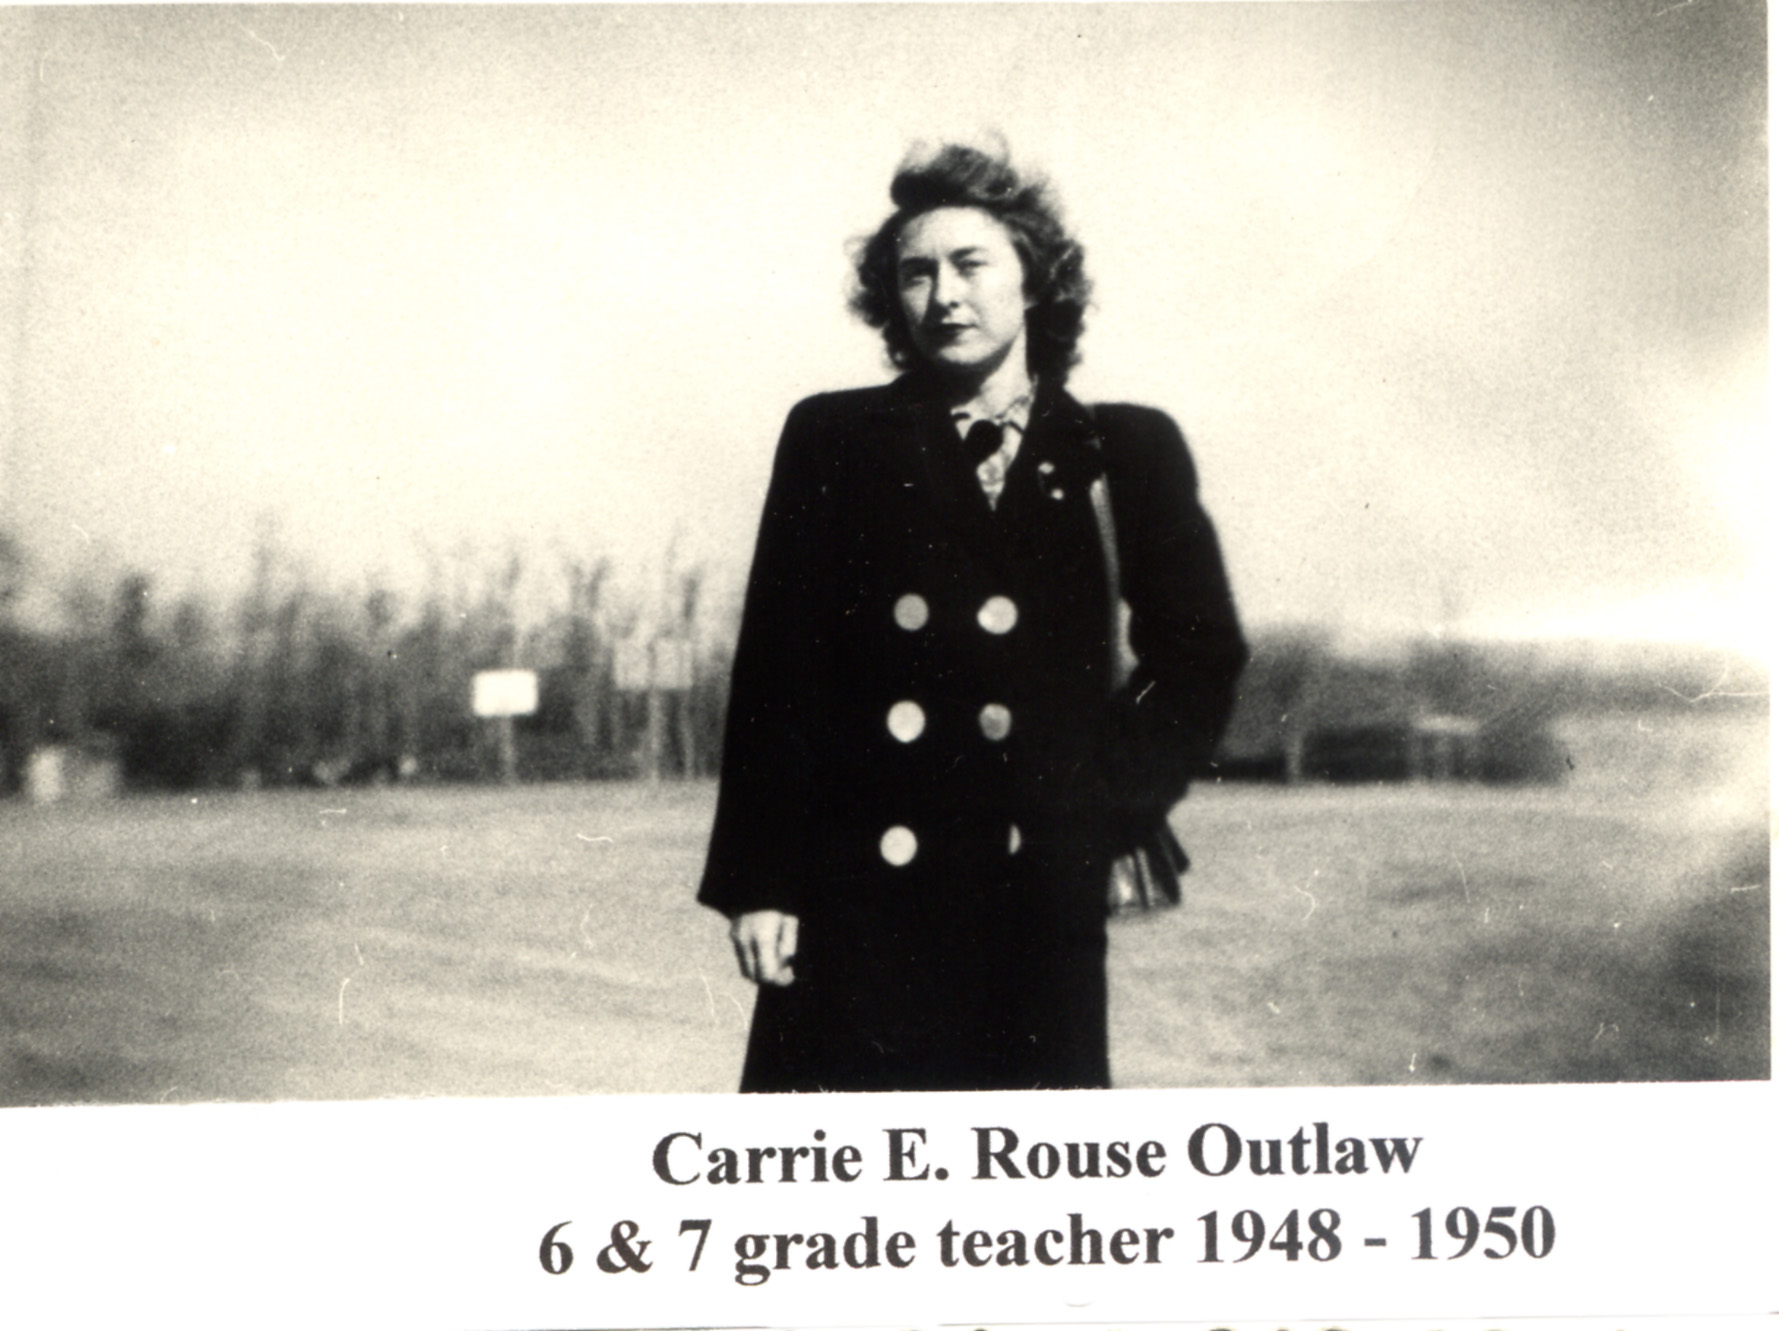 Carrie E. R. Outlaw